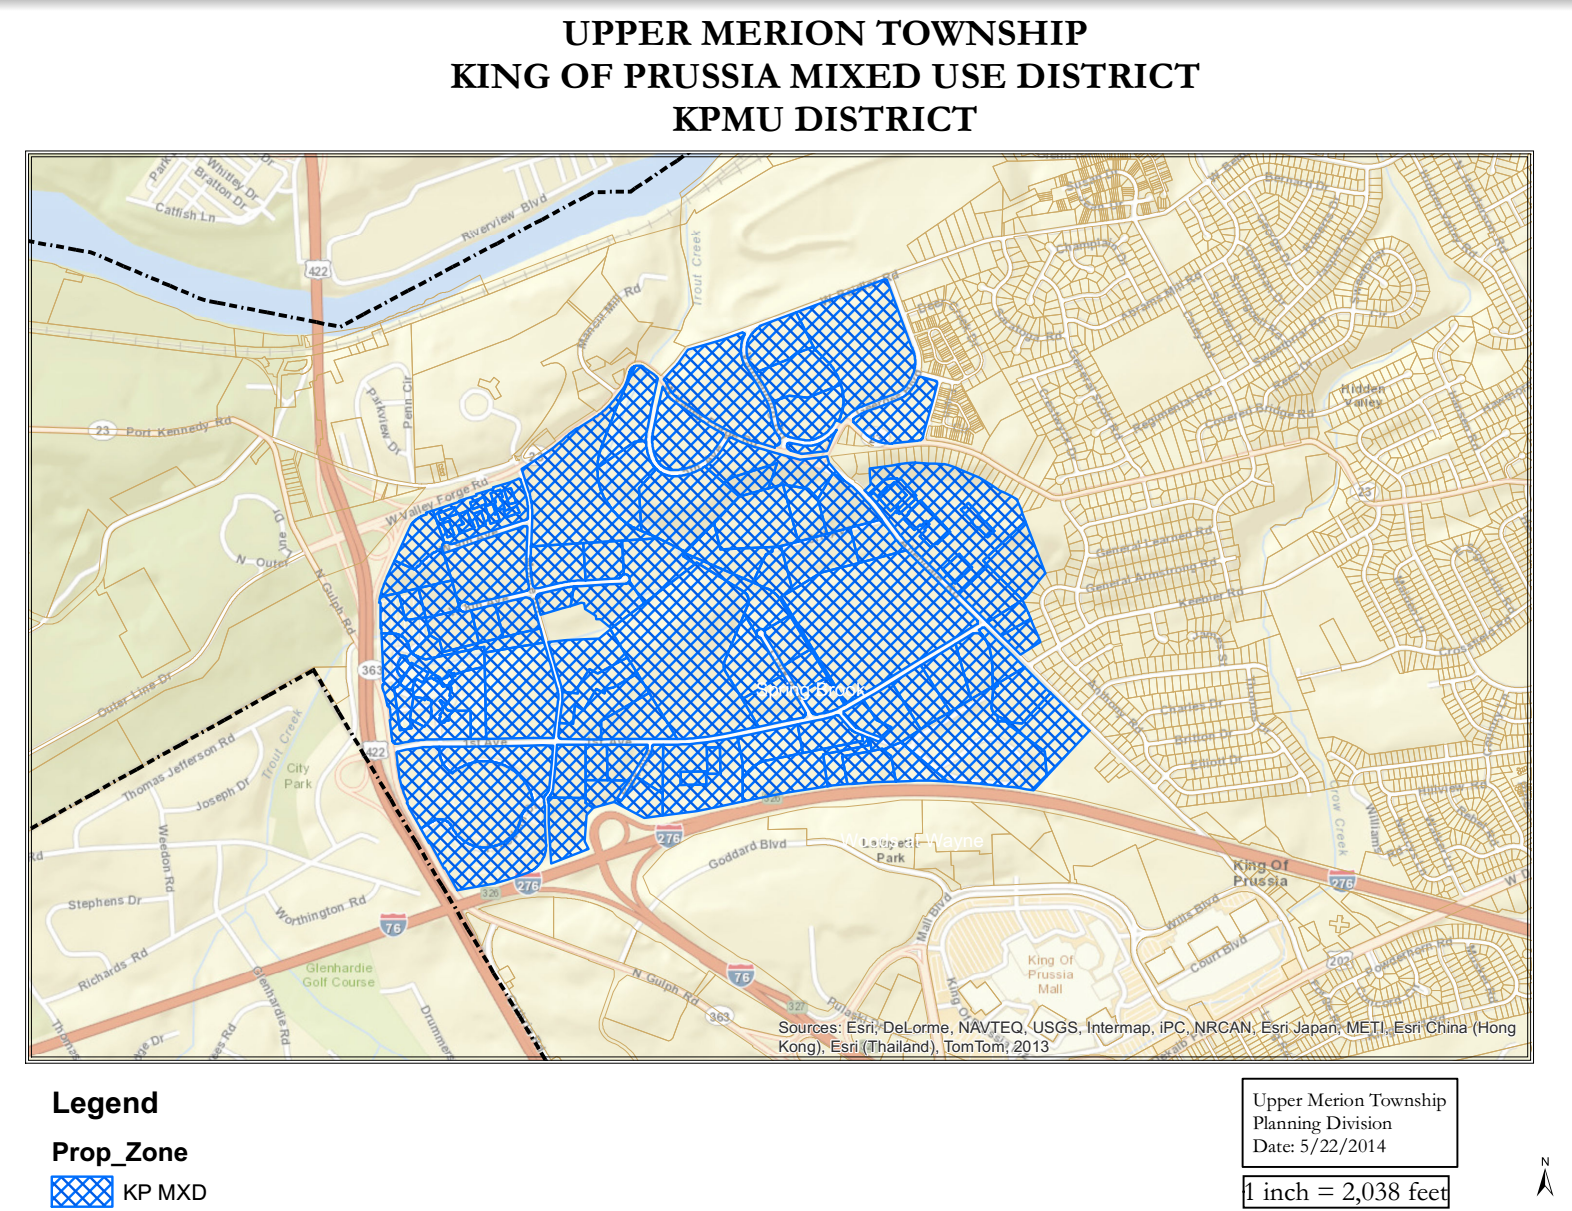 Upper Merion, King of Prussia mixed use district